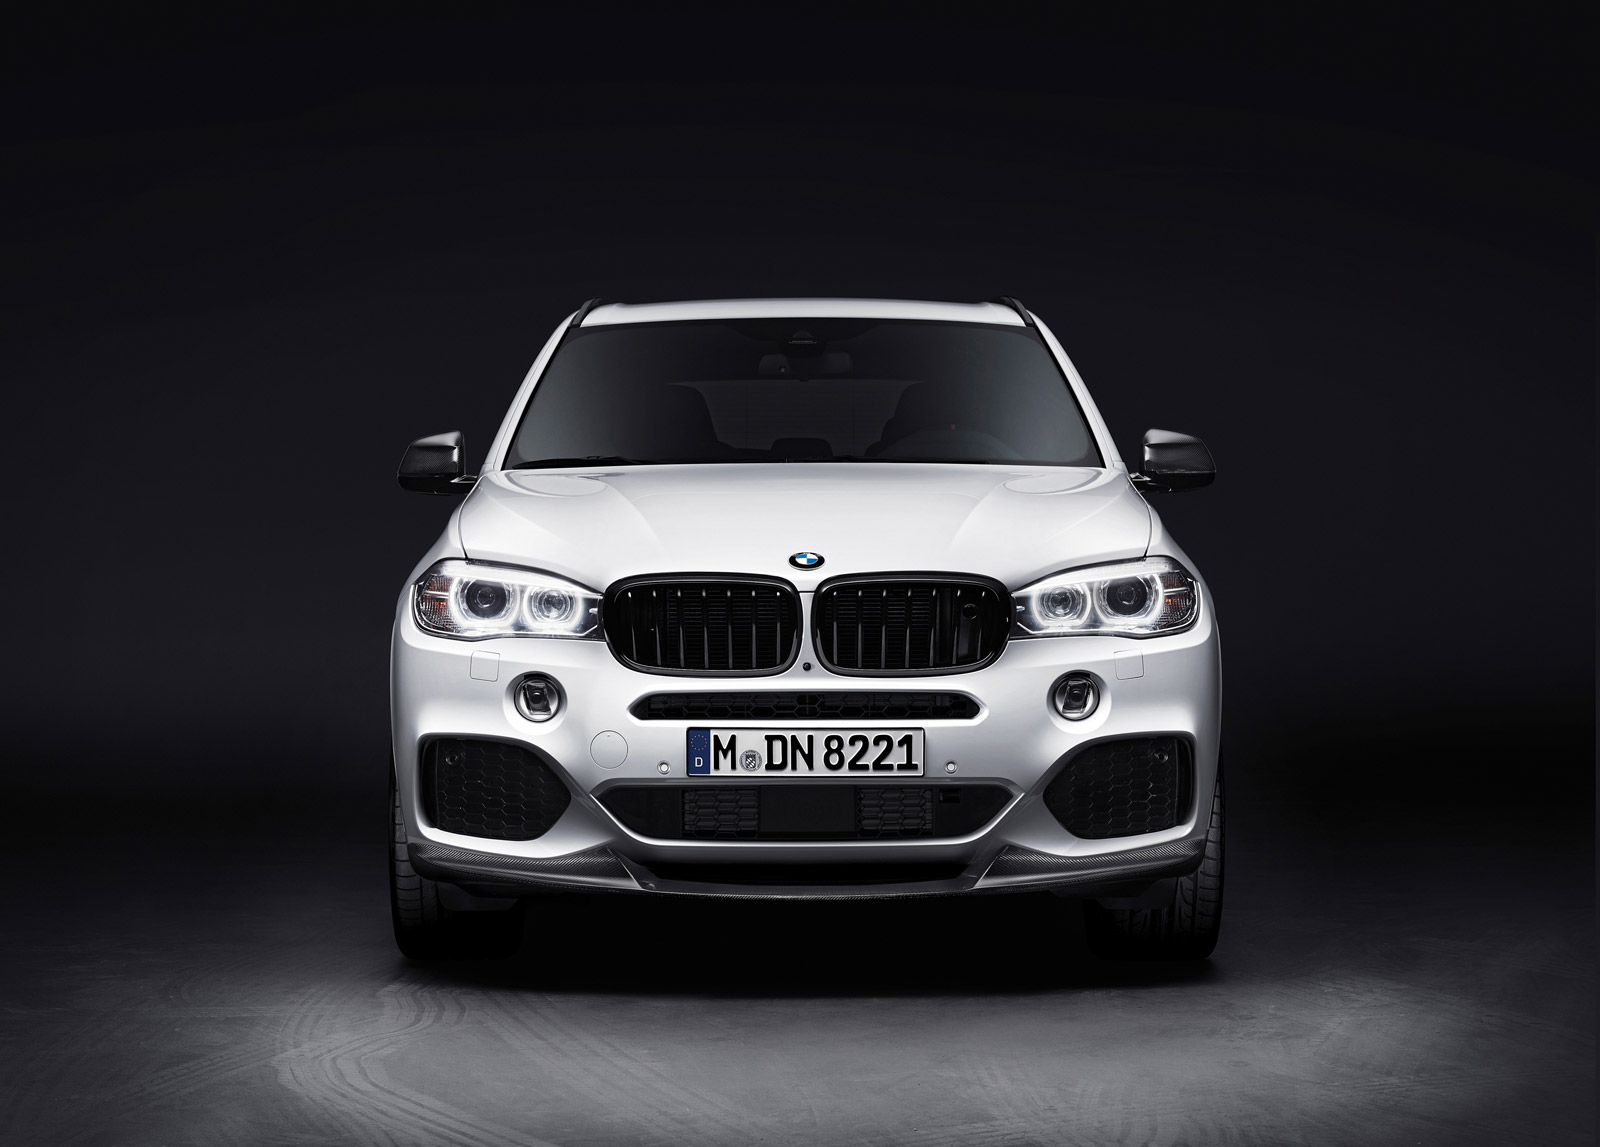 BMW Announces M Performance Parts For X5 Owners In The U.S.